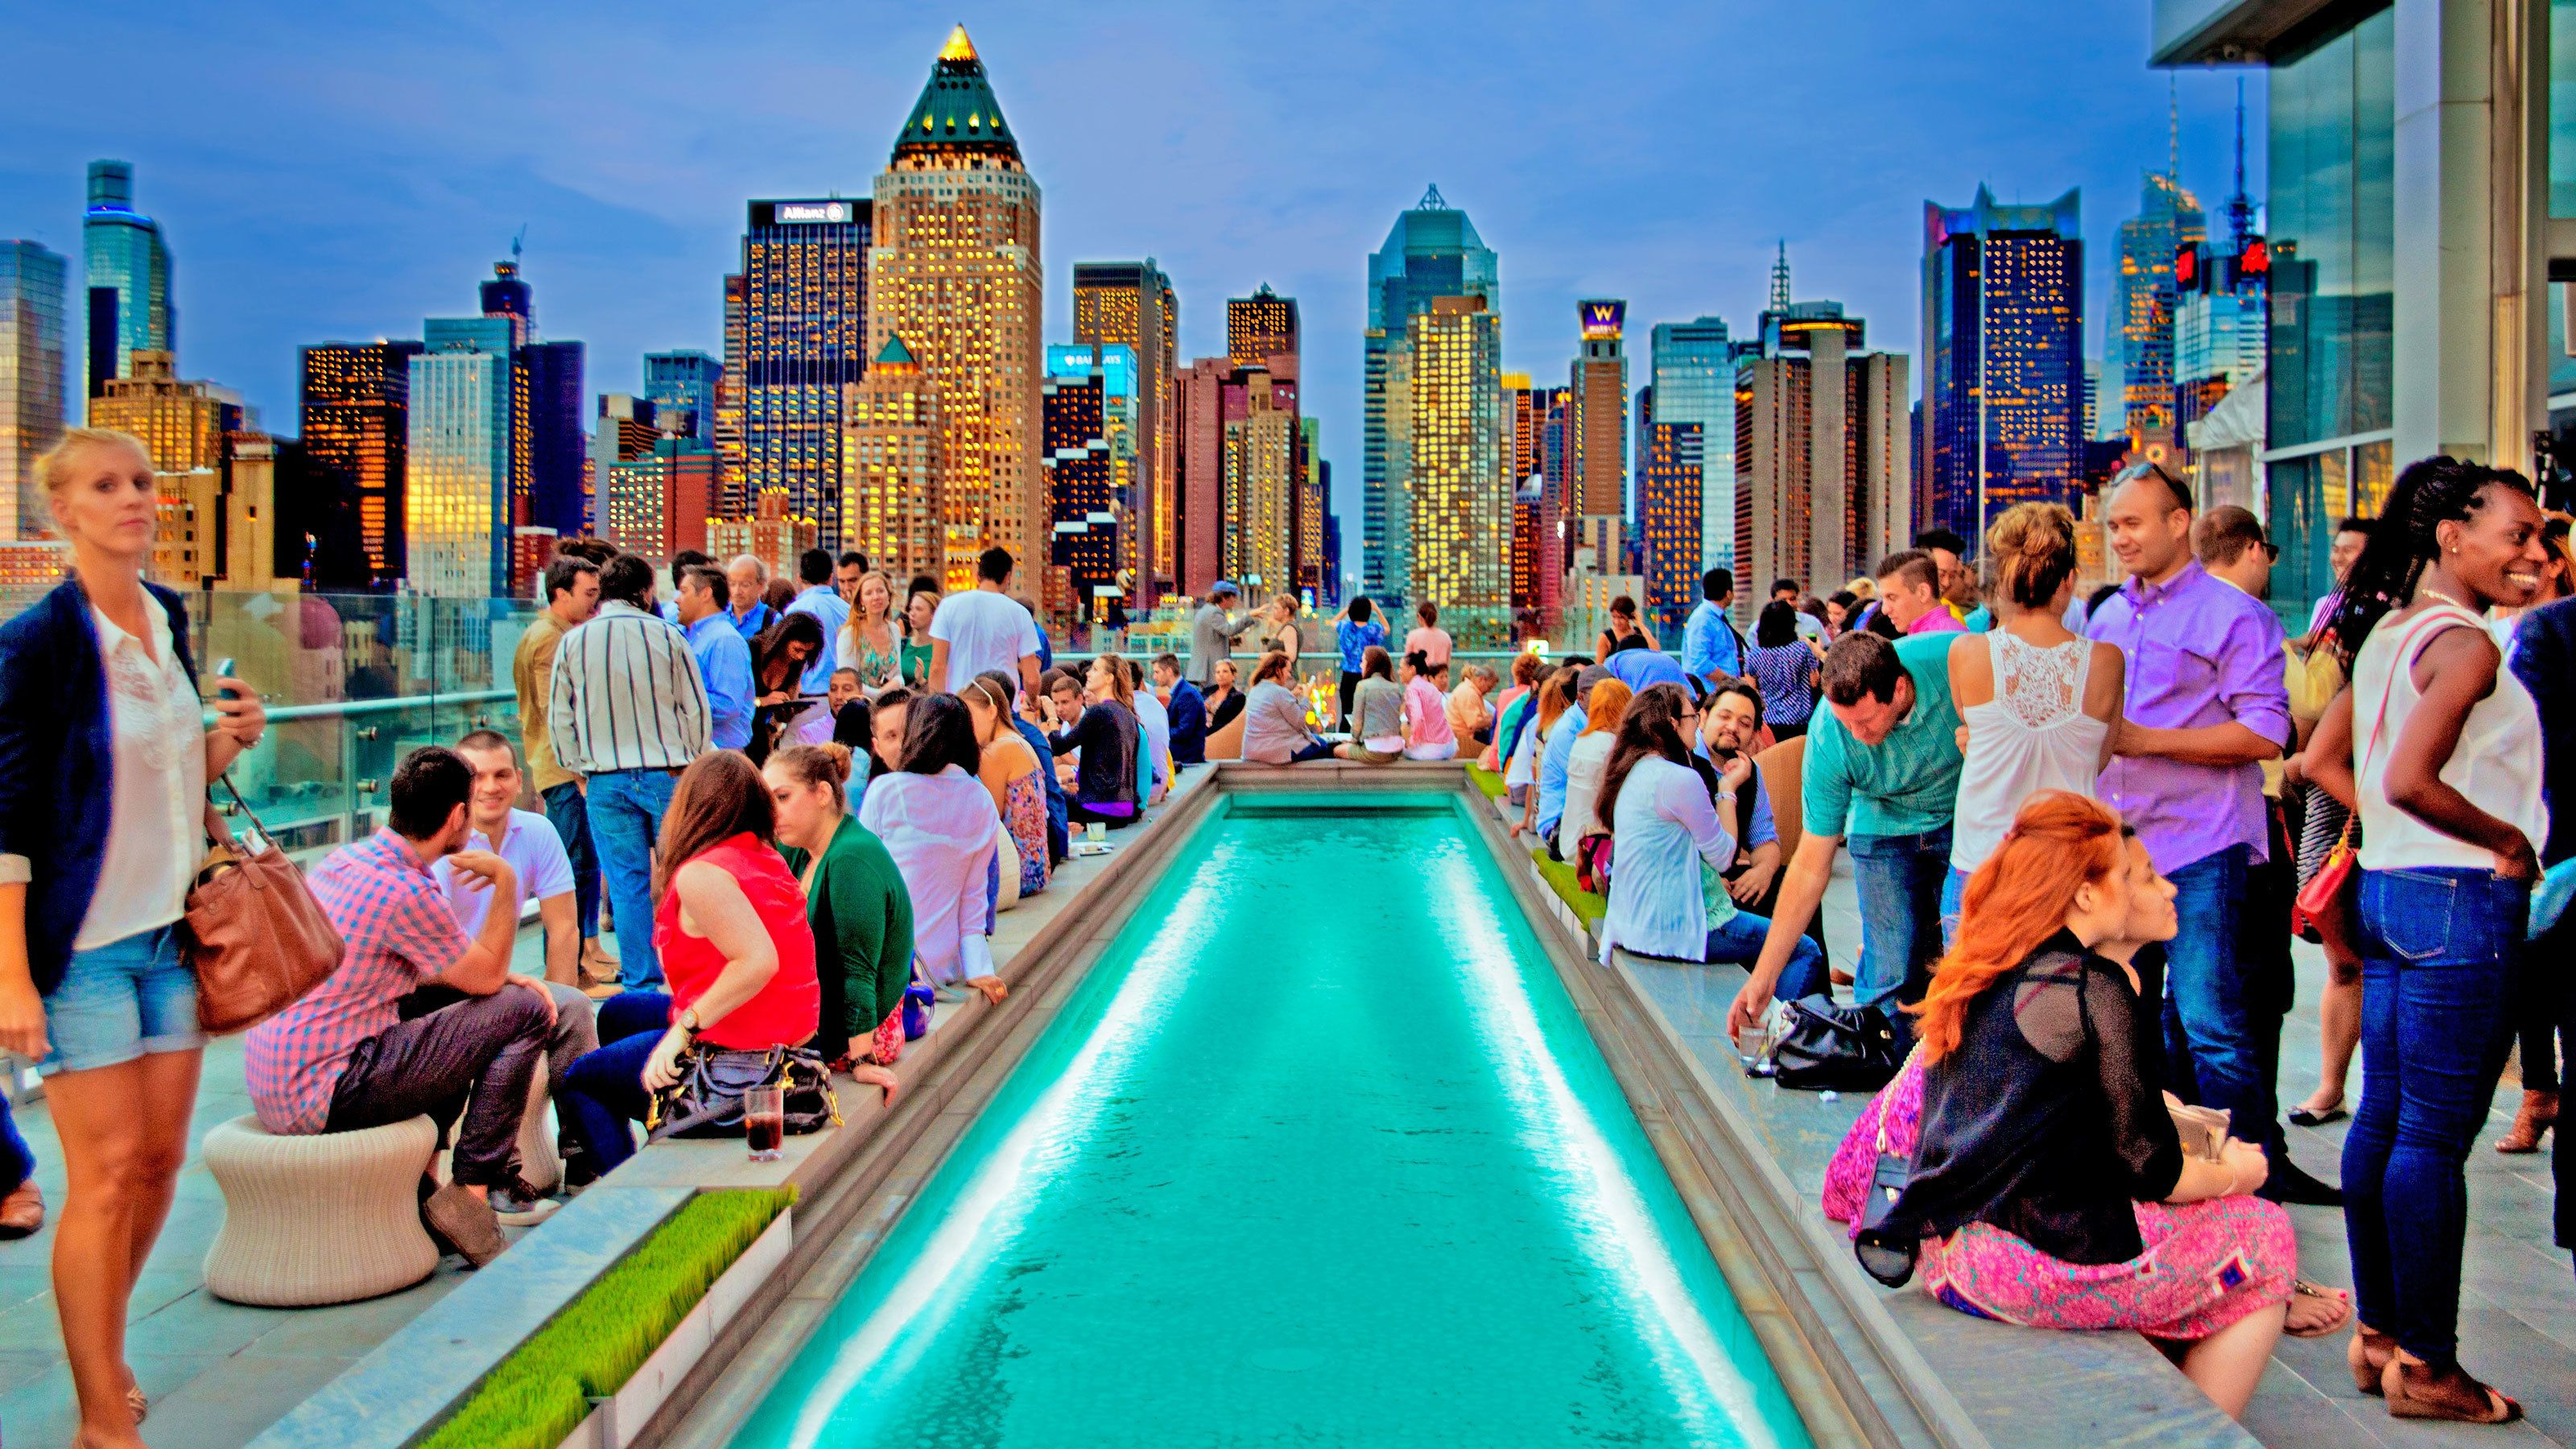 View of Rooftop Lounge Experience in New York